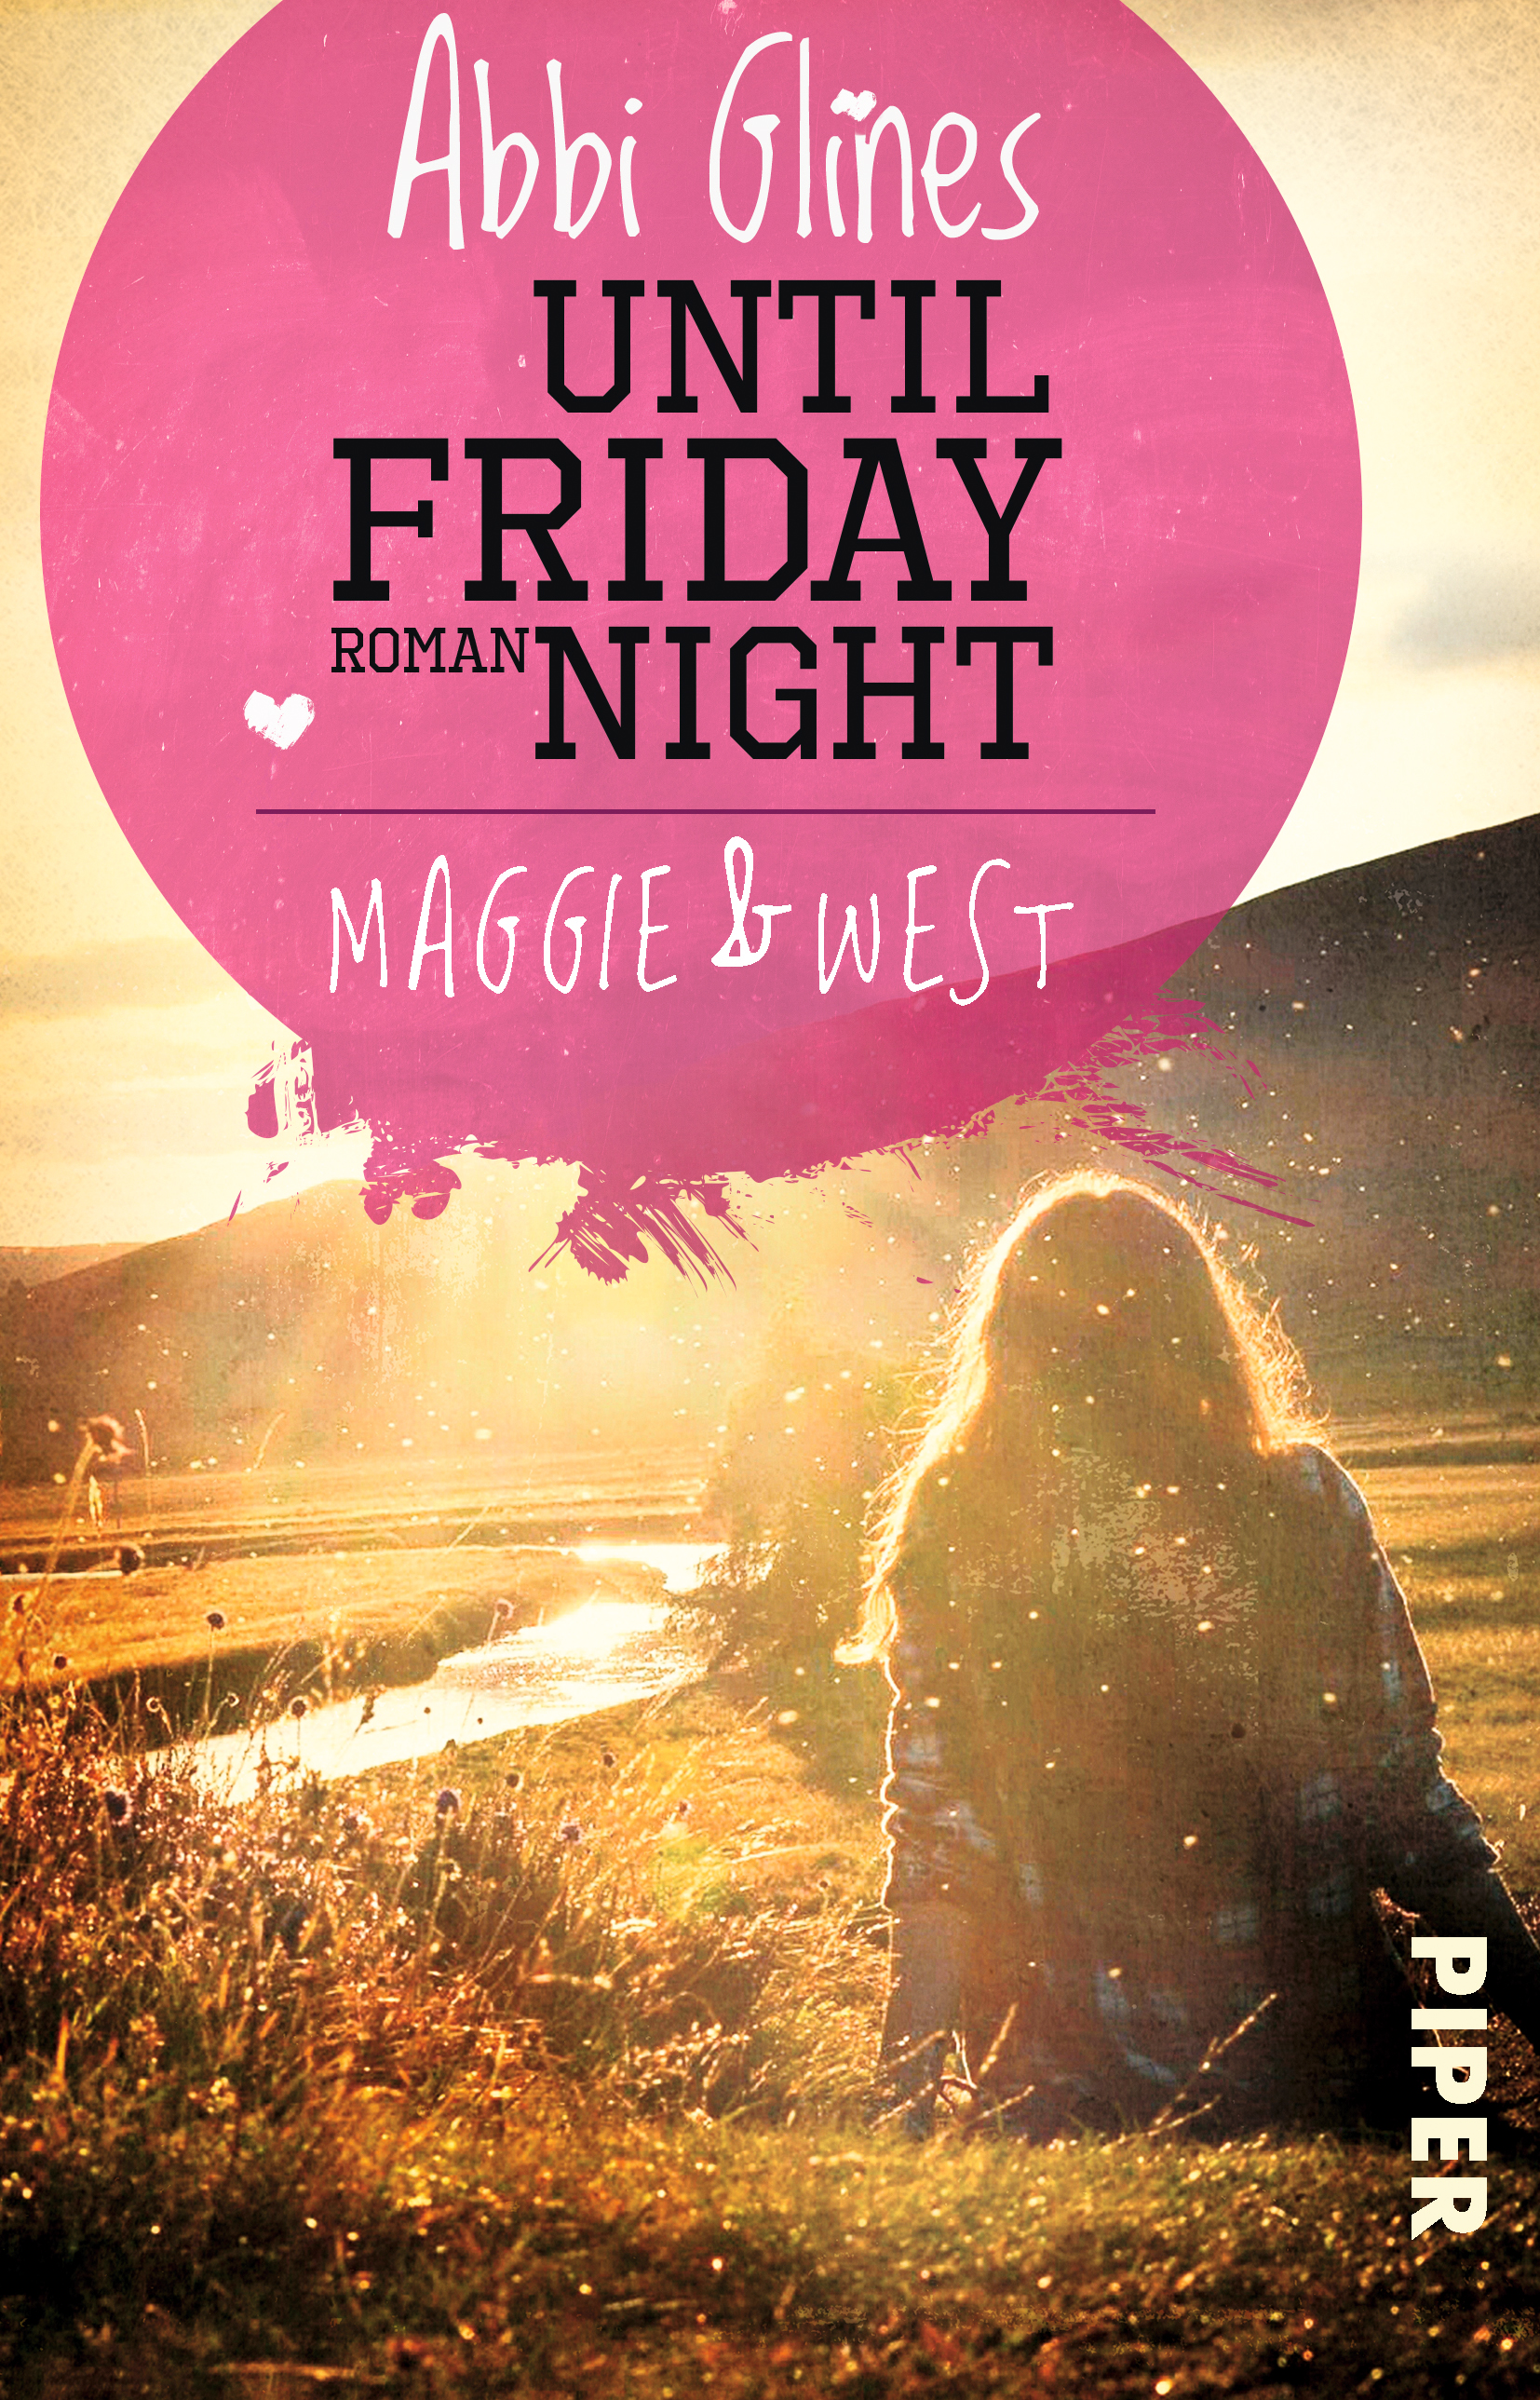 Until friday Night - Maggie & West